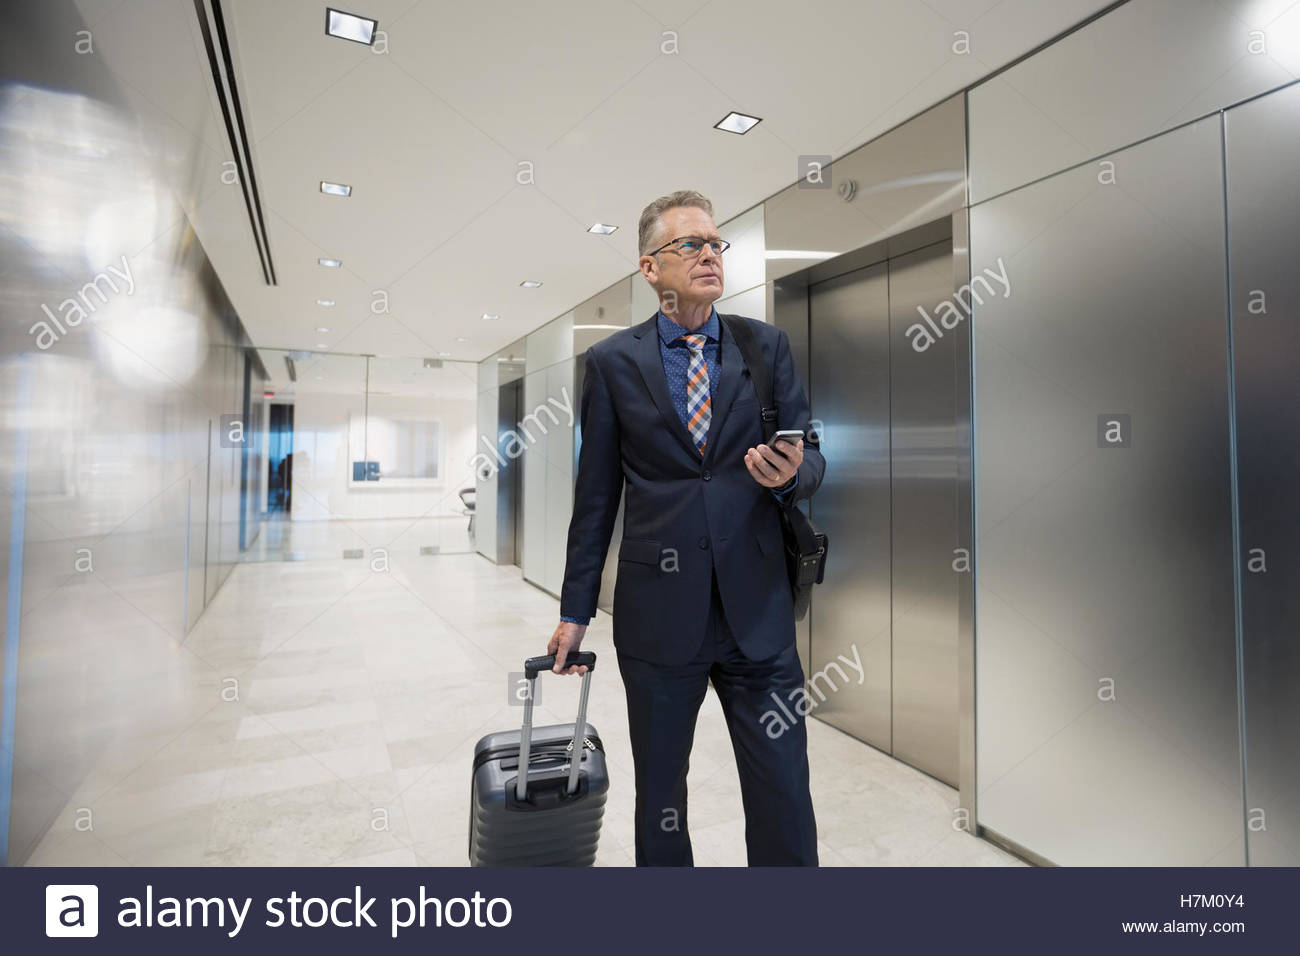 Businessman with cell phone pulling luggage past elevators in airport corridor - Stock Image